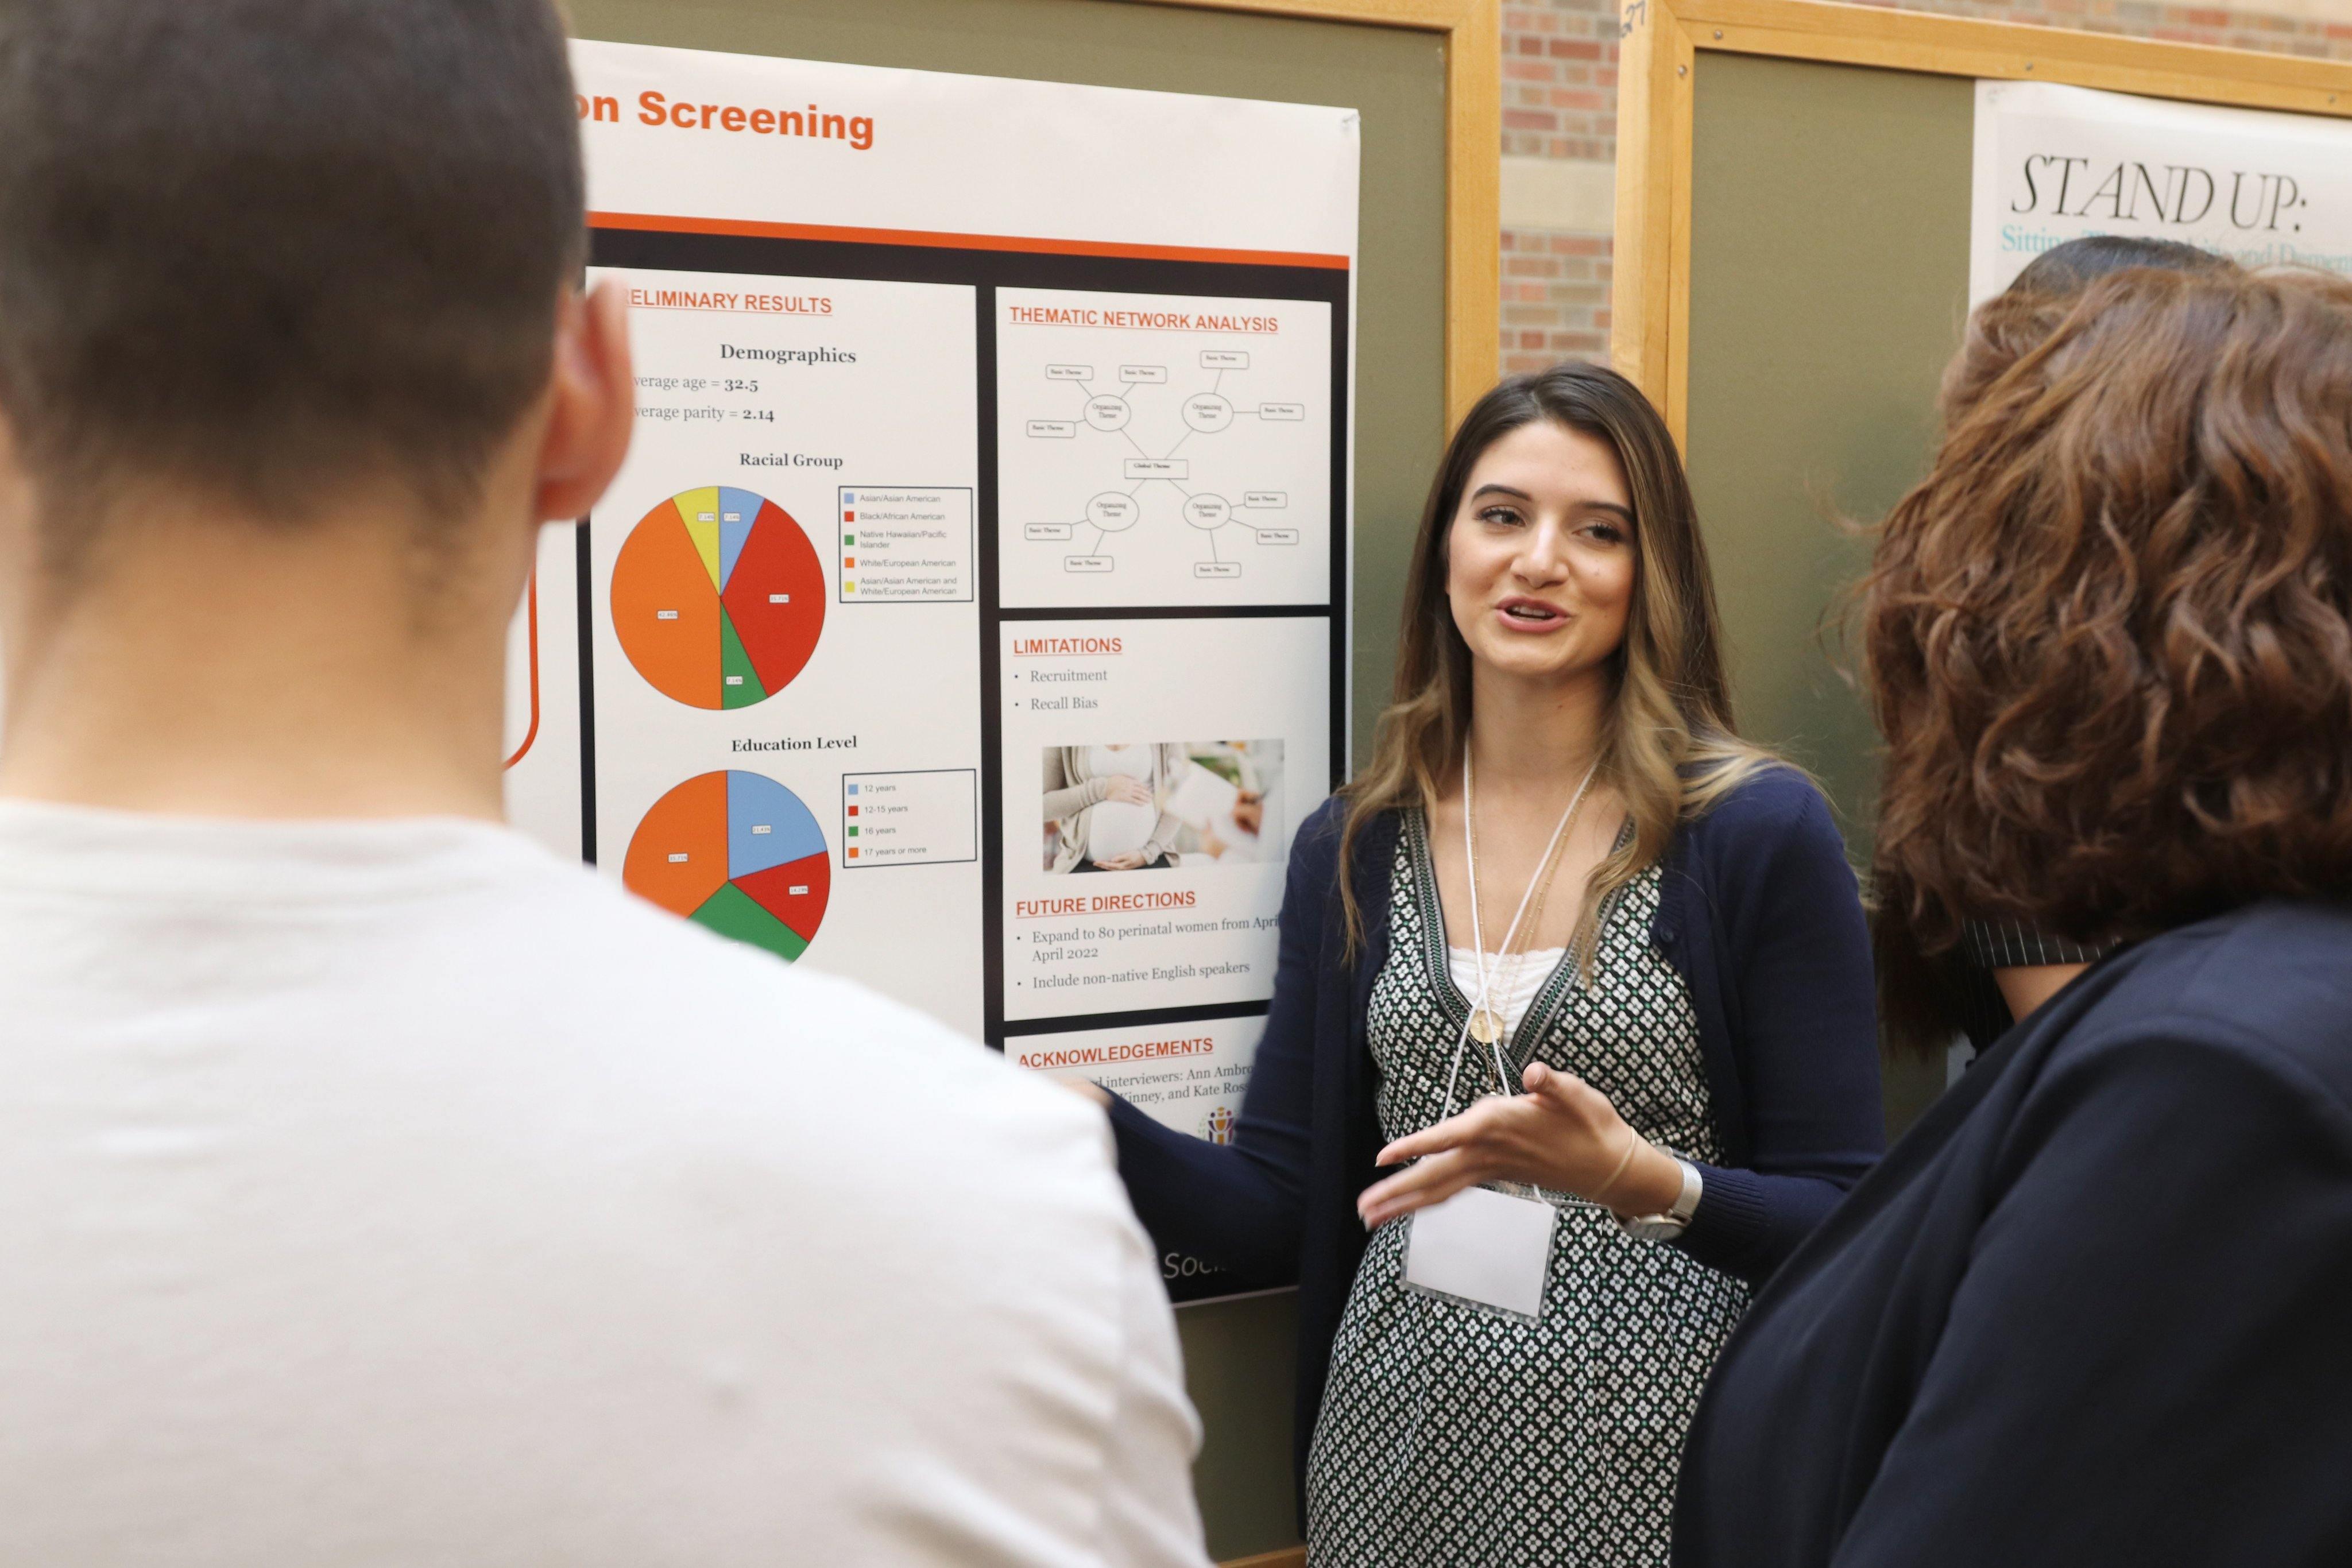 Alex presenting her poster